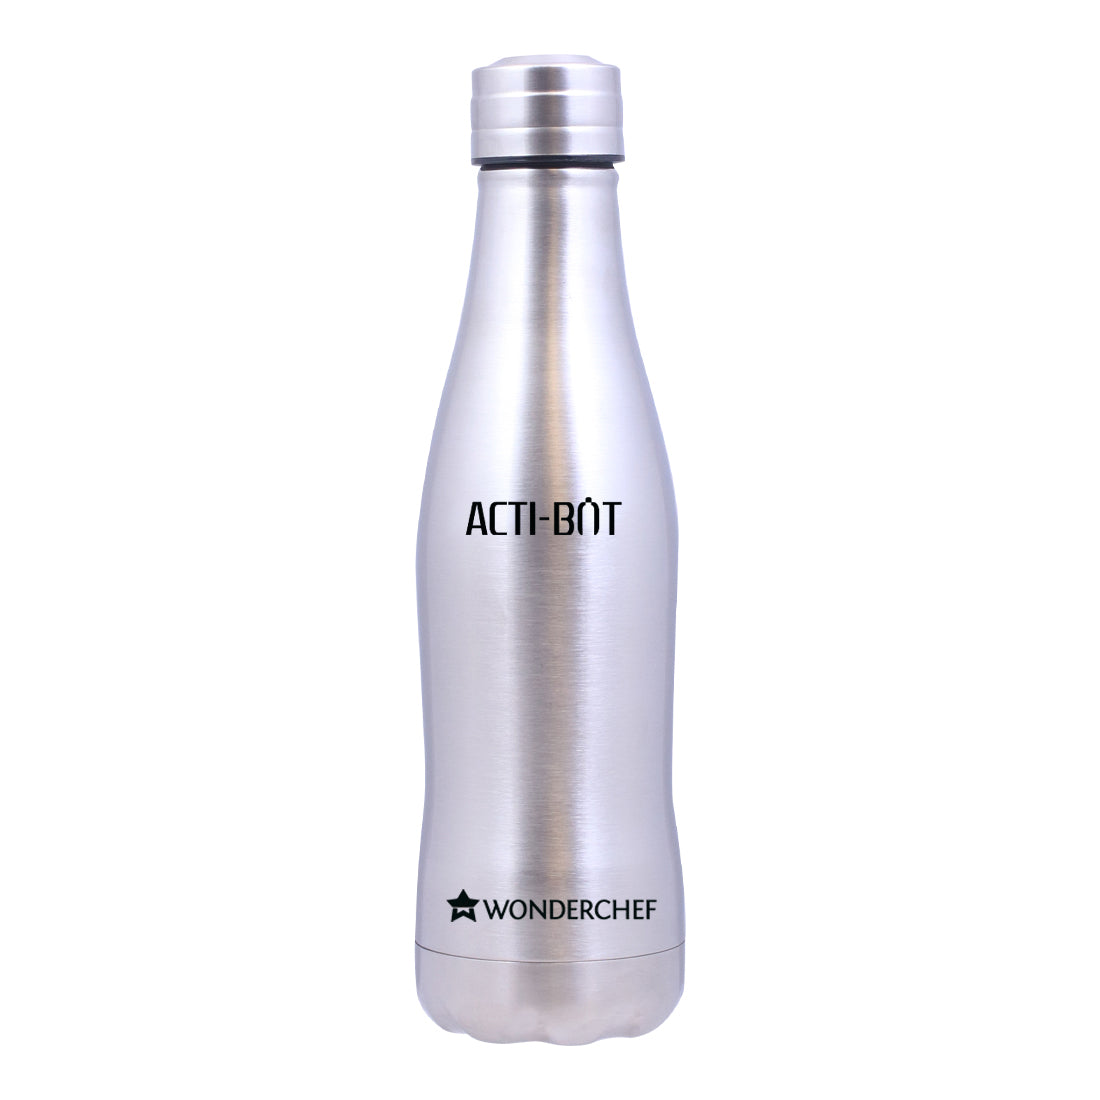 Wonderchef Acti-Bot Single Wall Bottle Stainless Steel- 650ml